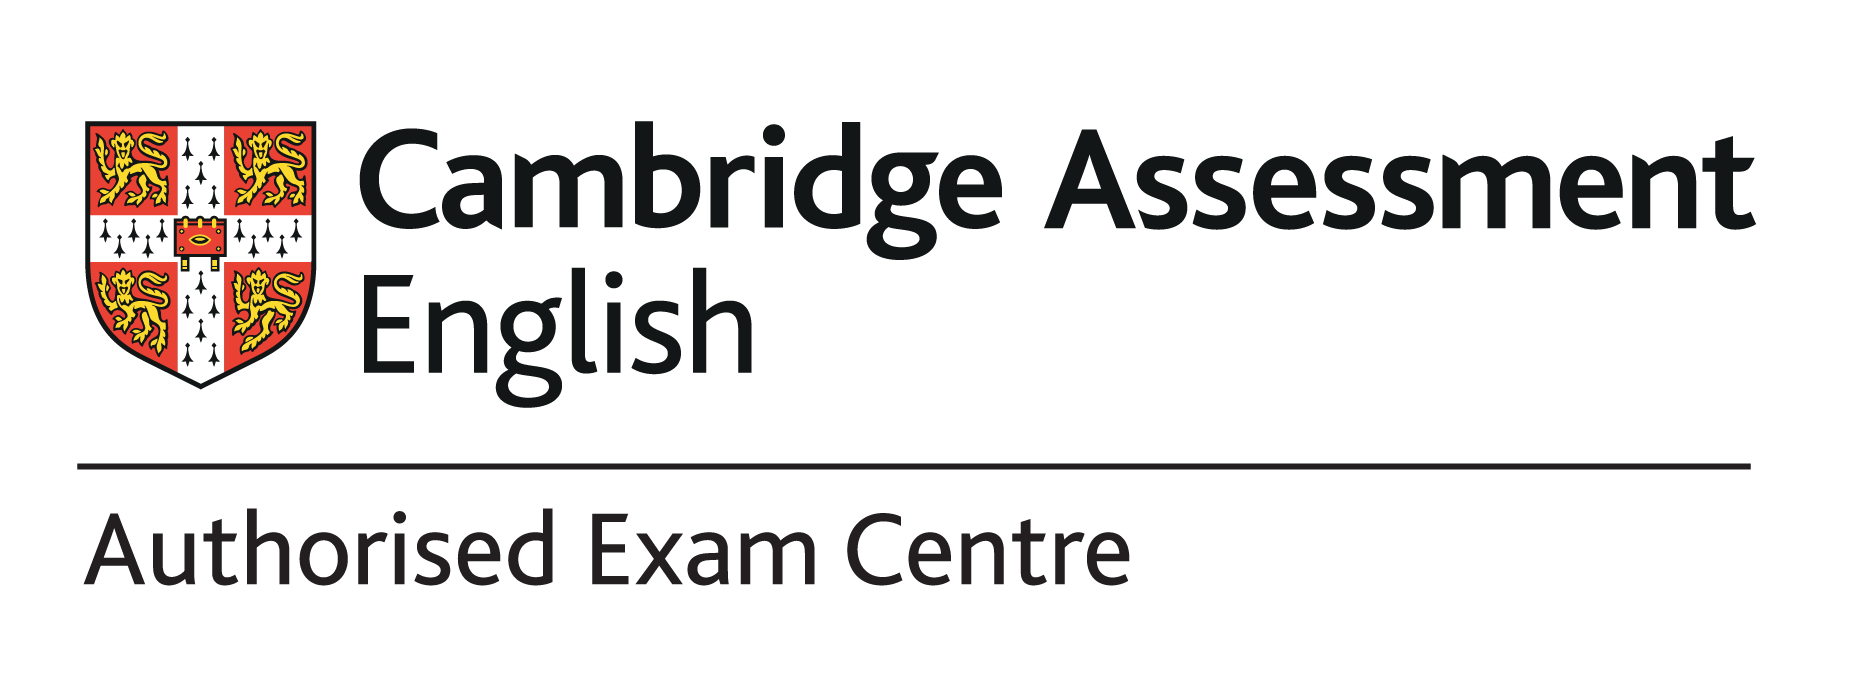 examens Cambridge VICTORIA'S English